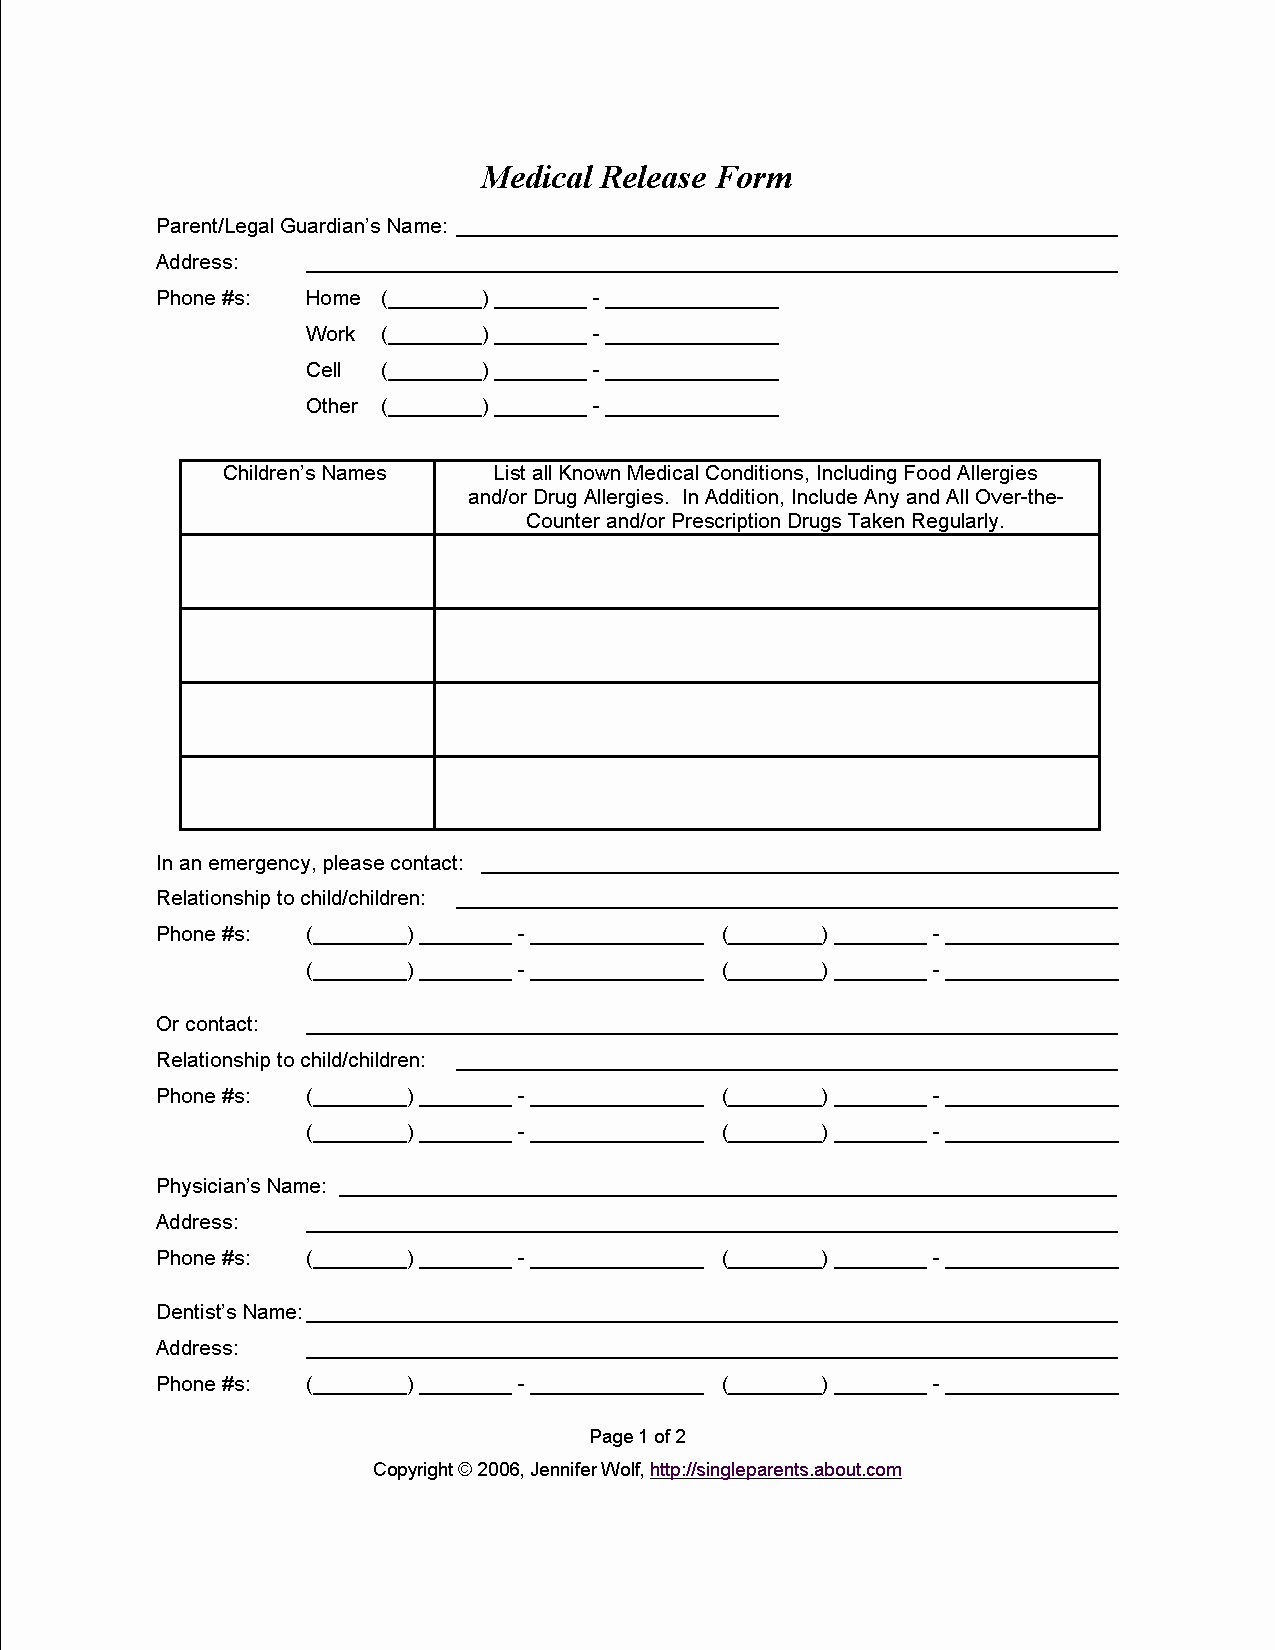 Medical Consent form Template Fresh Medical Consent form when You Might Need E